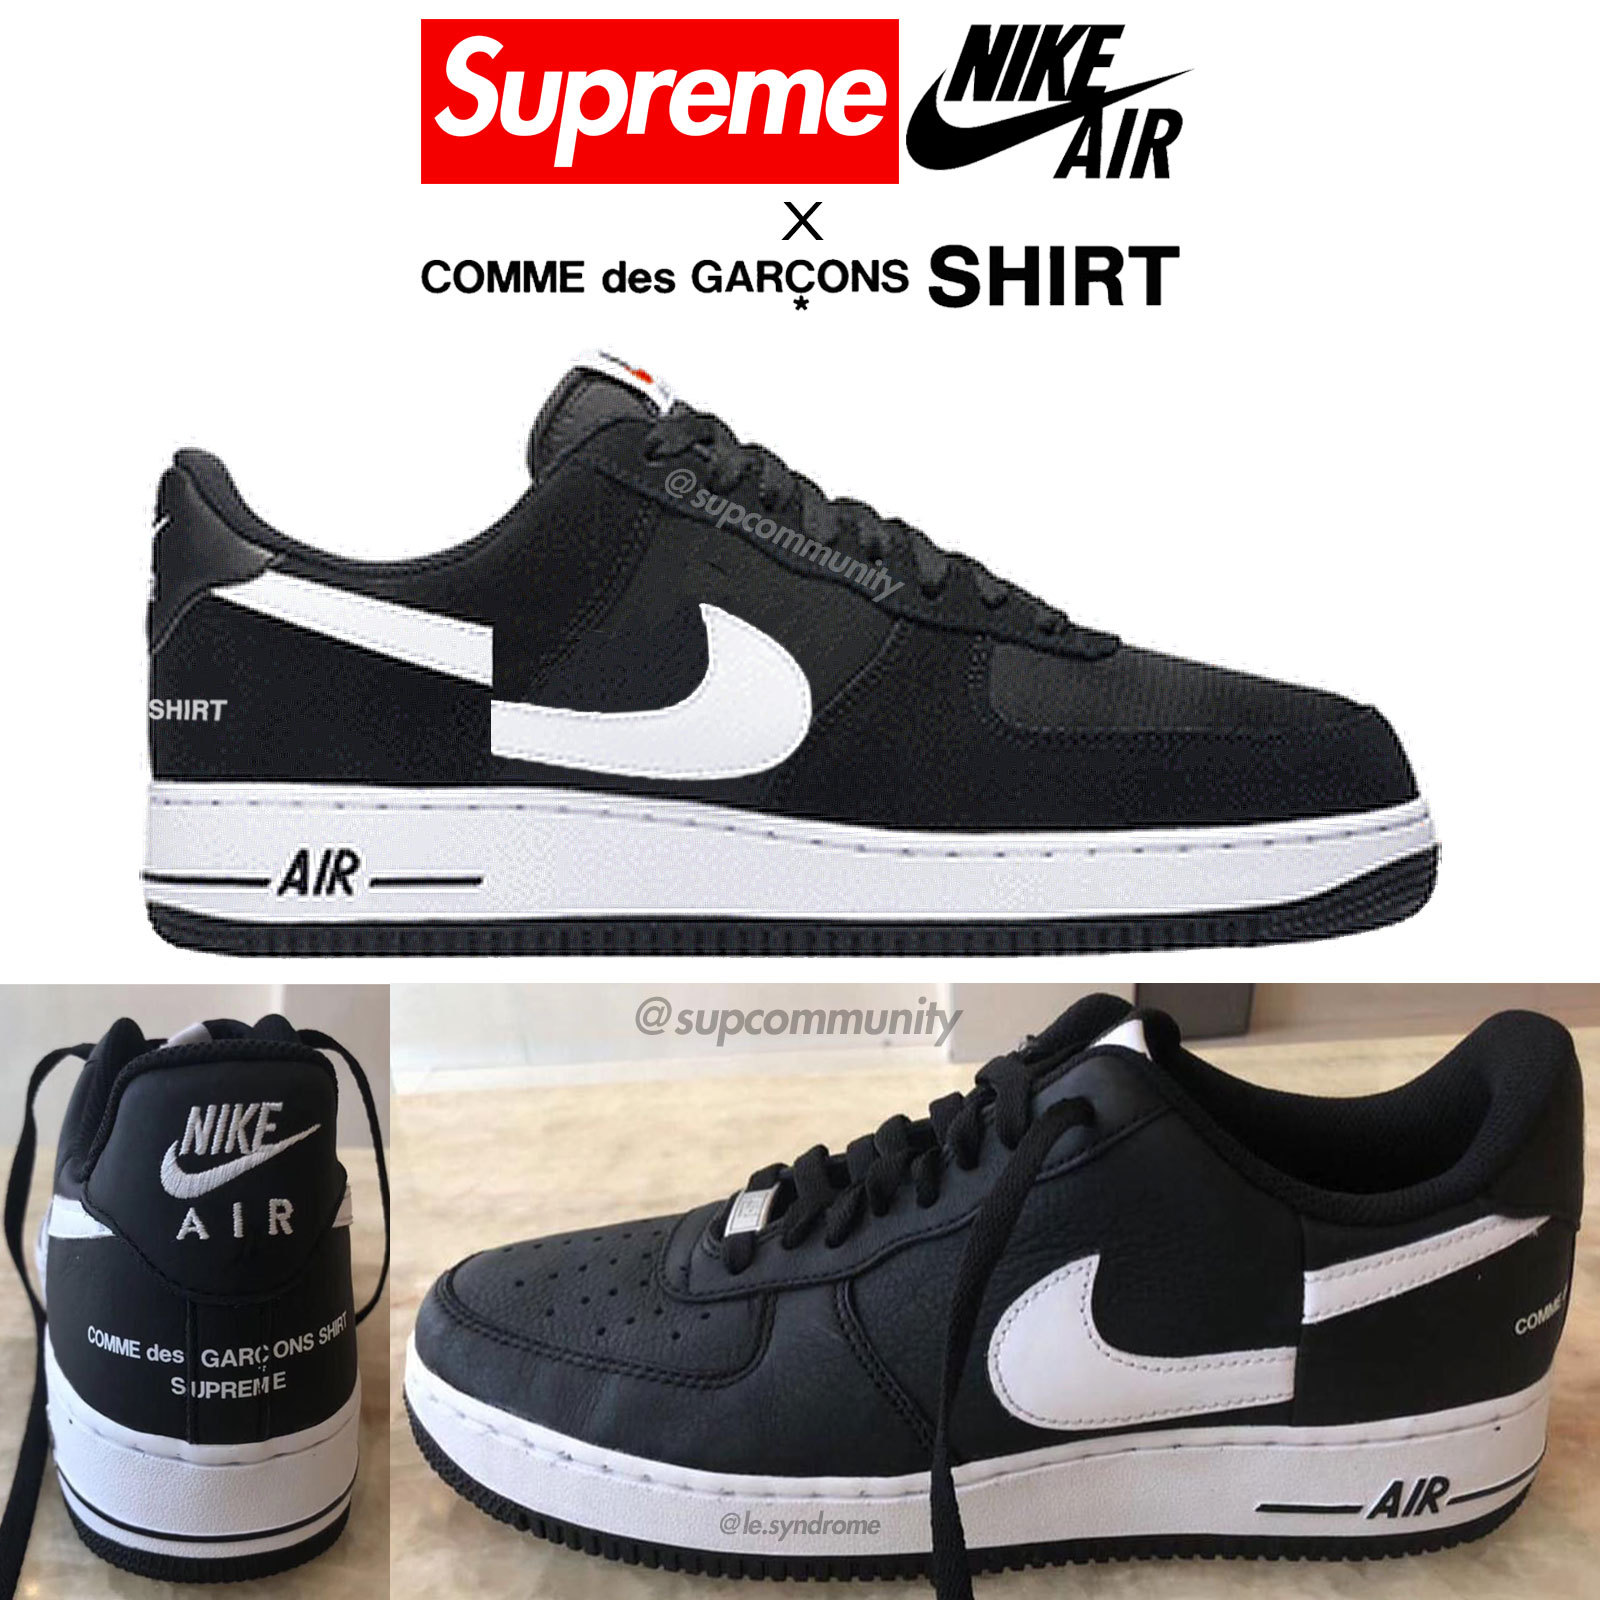 the latest 1804b 5c5a6 Supreme/CDG/Nike Air Force 1 Rumor - News - Supremecommunity